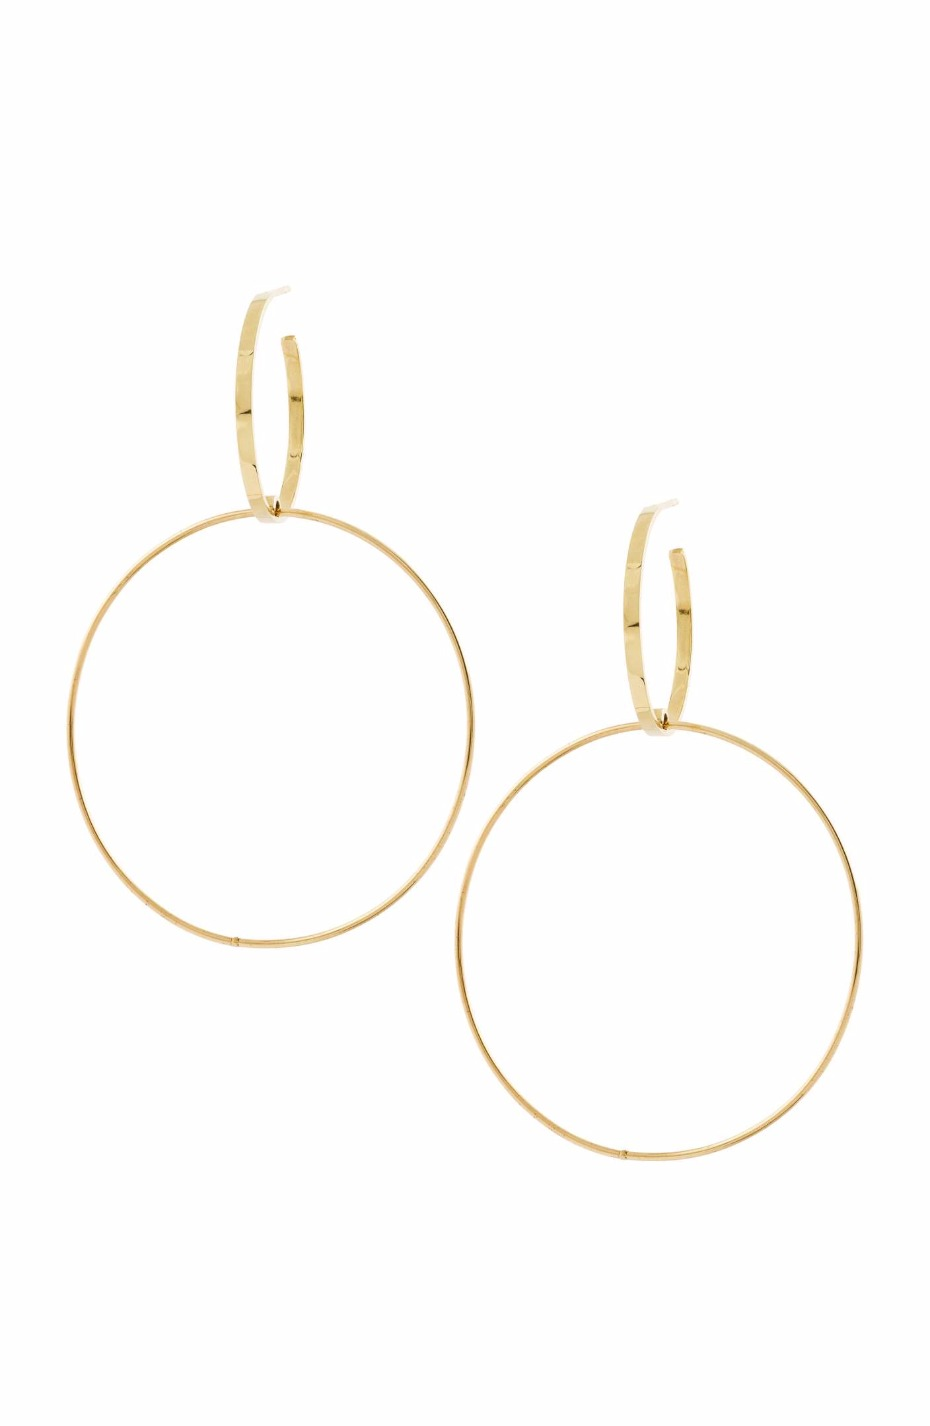 Double Bond Hoop Earrings by LANA JEWELRY